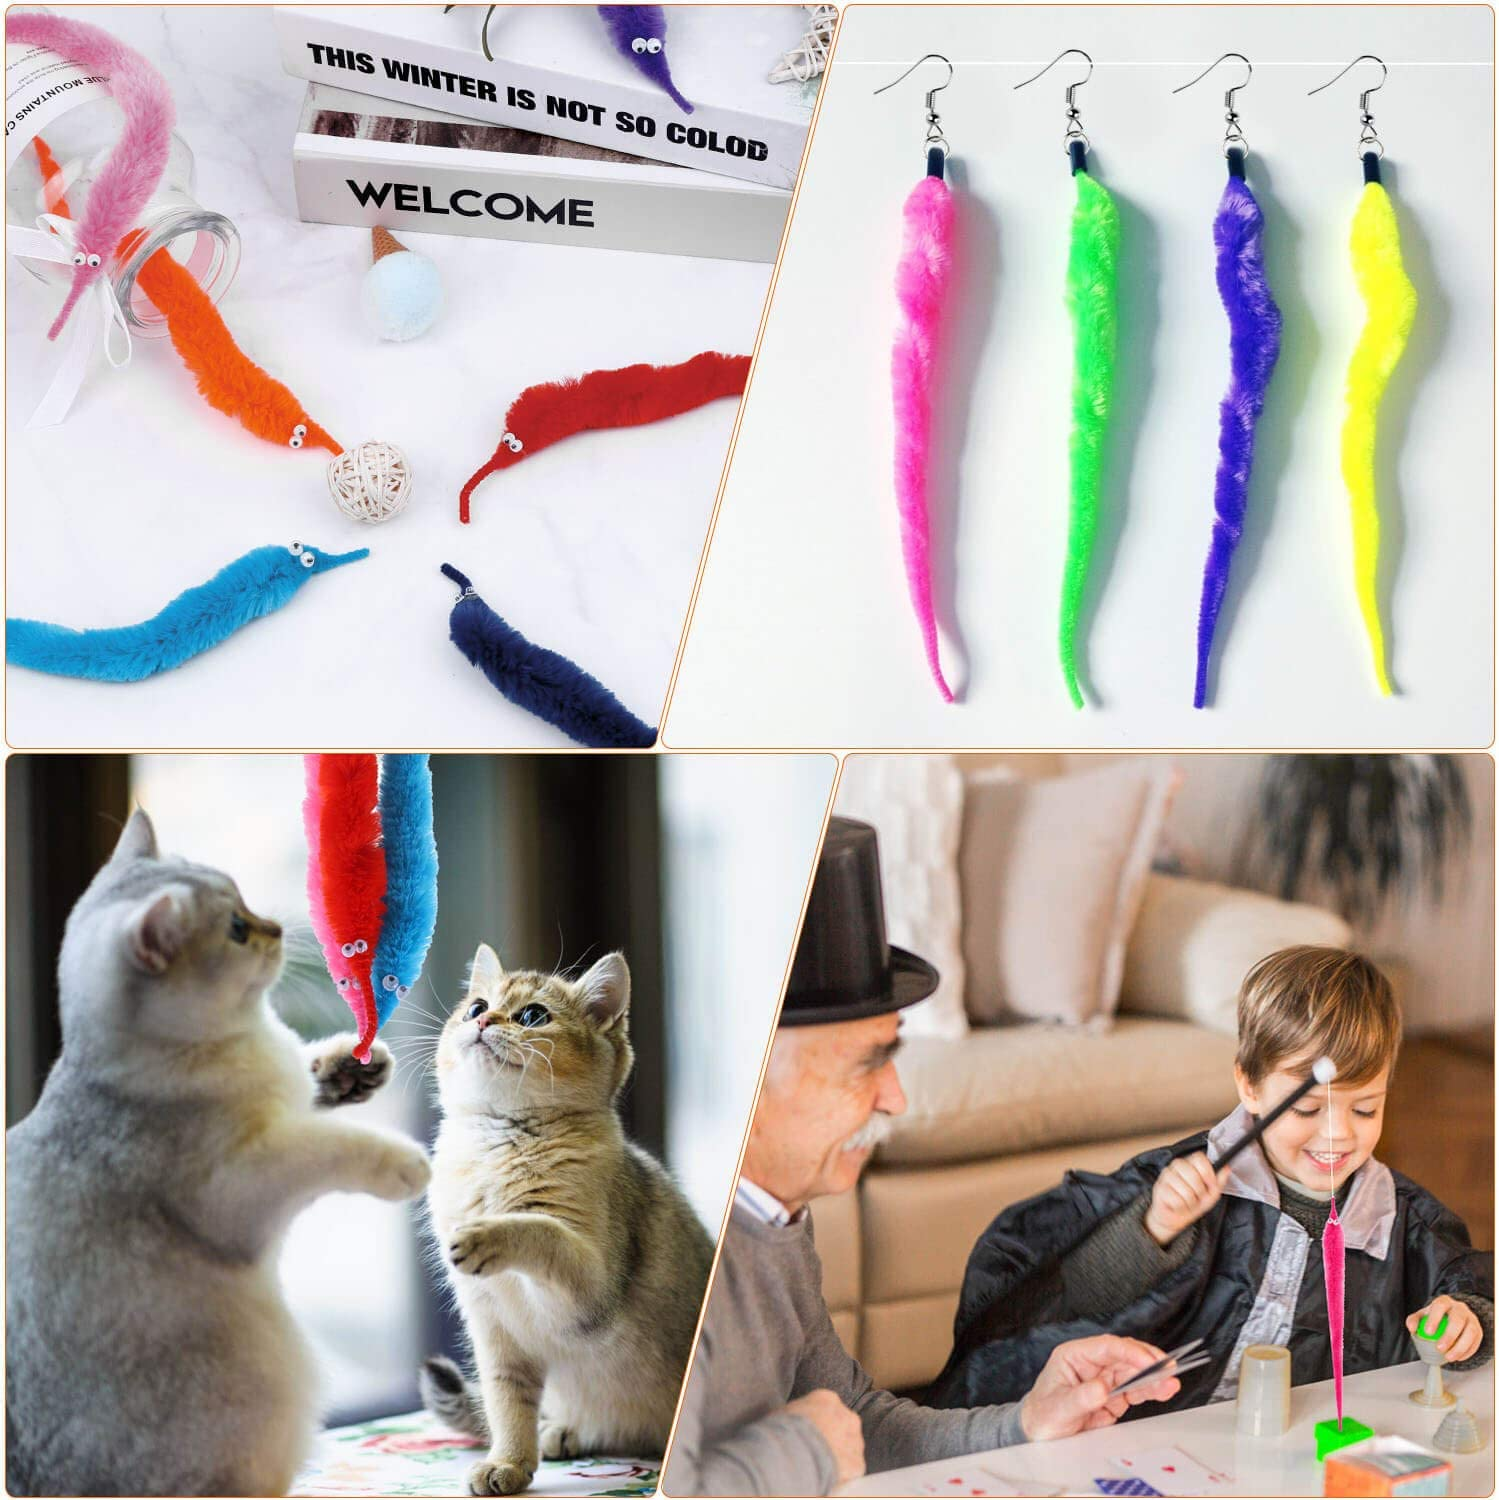 selizo Worm On A String and Tiny Babies 100Pcs Mini Plastic Babies with 20Pcs Fuzzy Worms On String Bulk for Small Baby Shower Ice Cube Games Party Favors Supplies